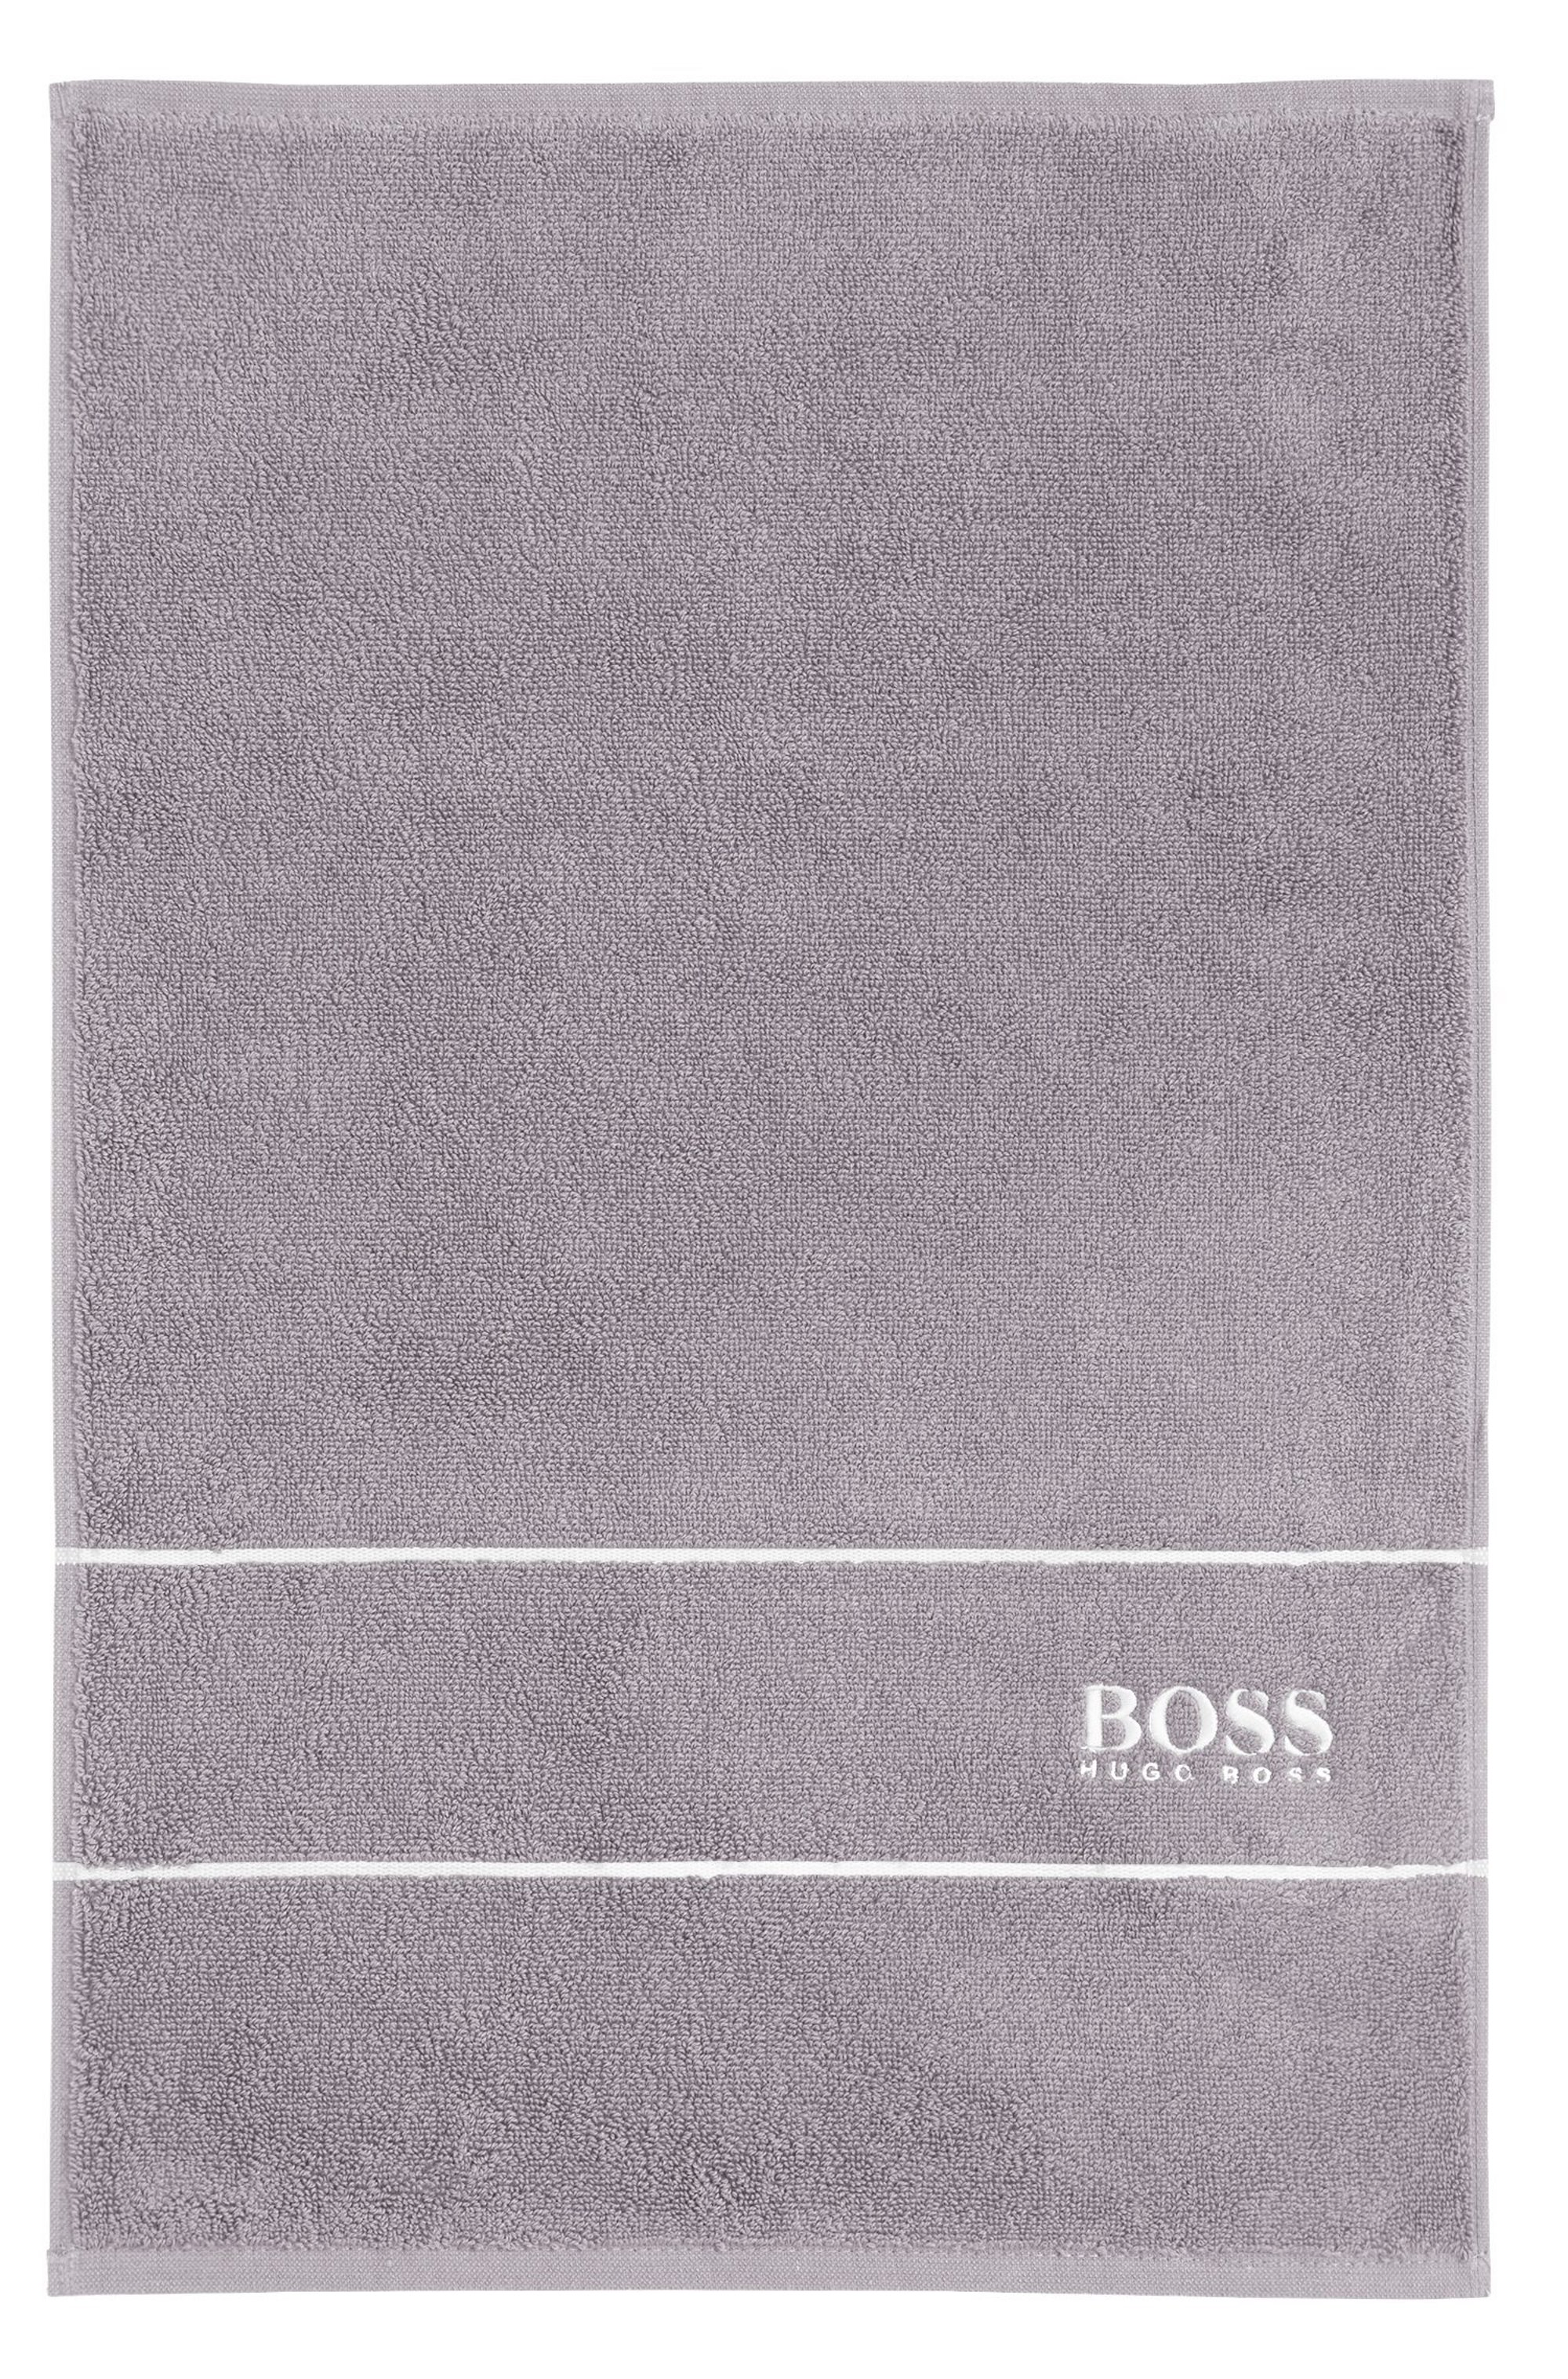 Finest Egyptian cotton guest towel with logo border